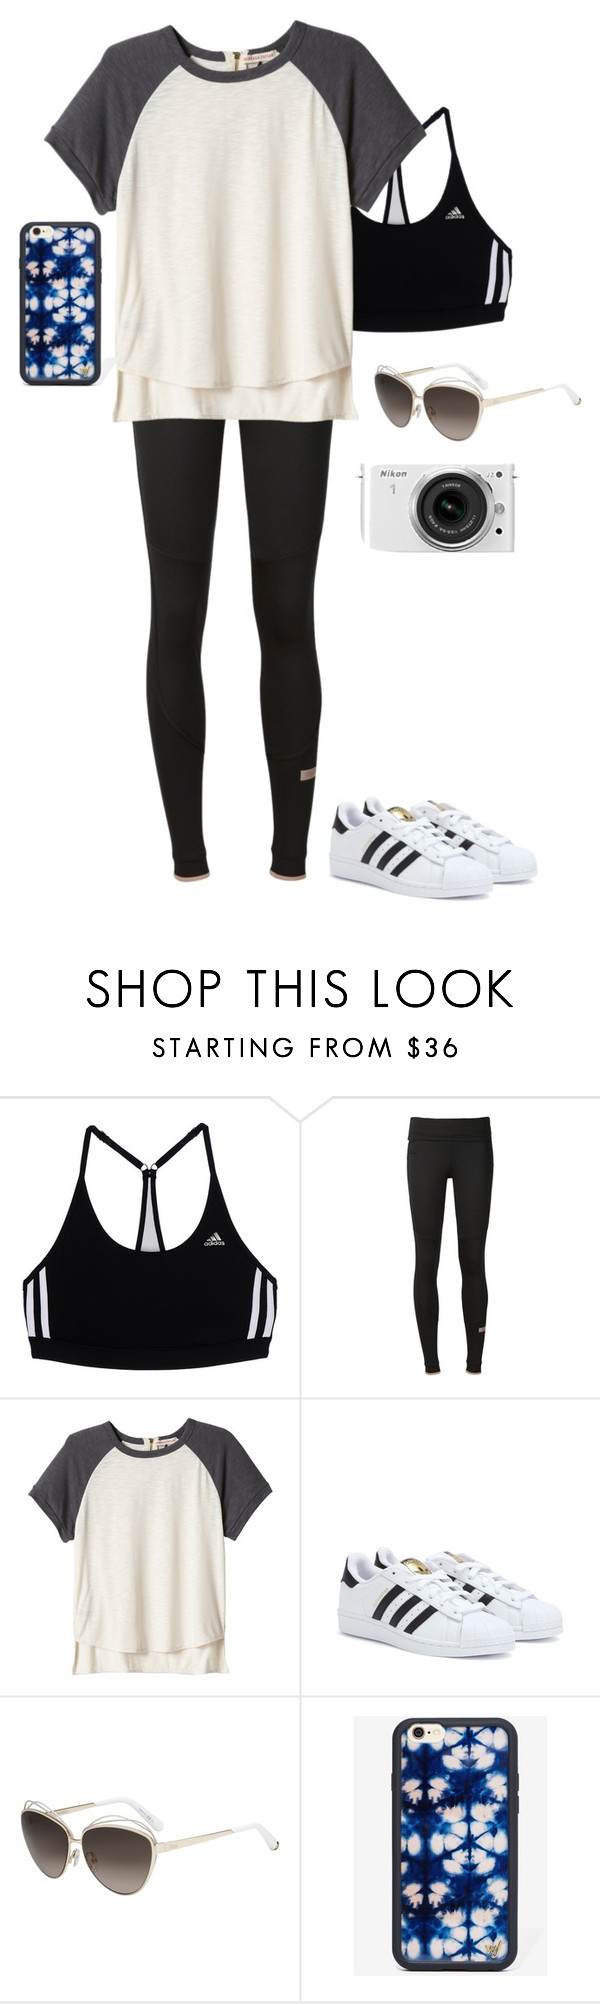 """almost there"" by indigo-atlantis on Polyvore featuring adidas, Rebecca Taylor, Christian Dior, Wildflower and Nikon"